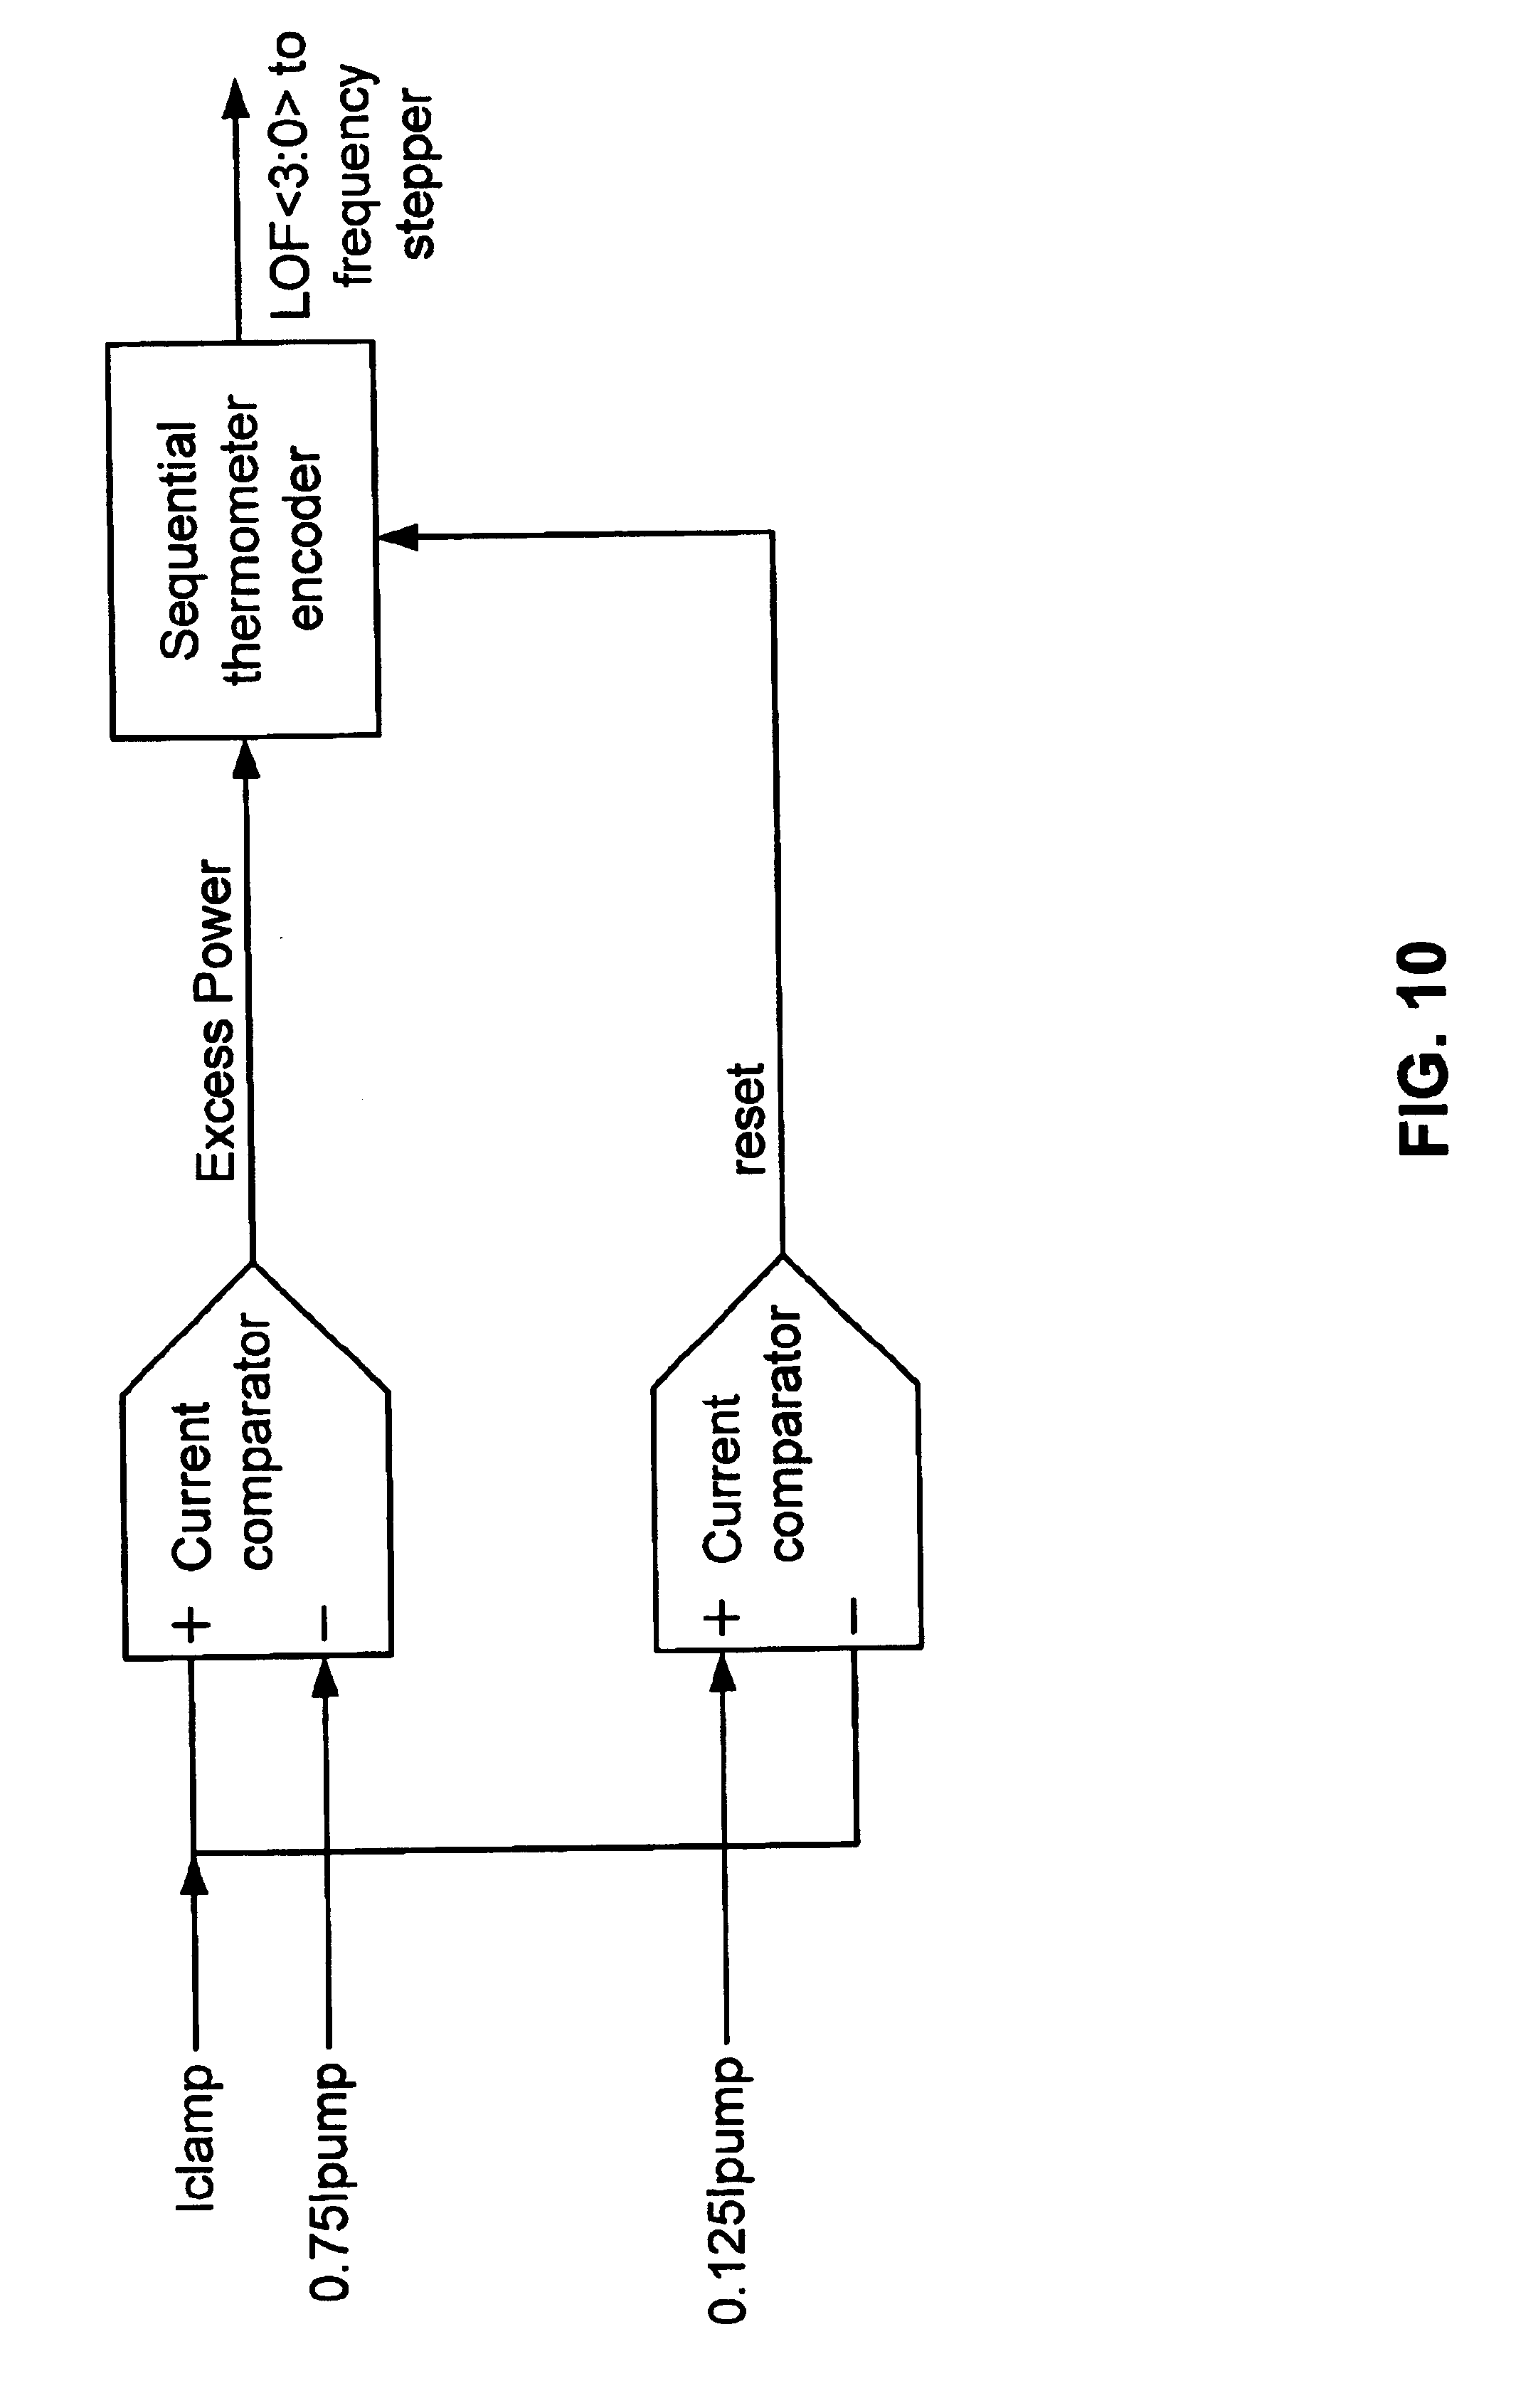 positive reference voltage generator